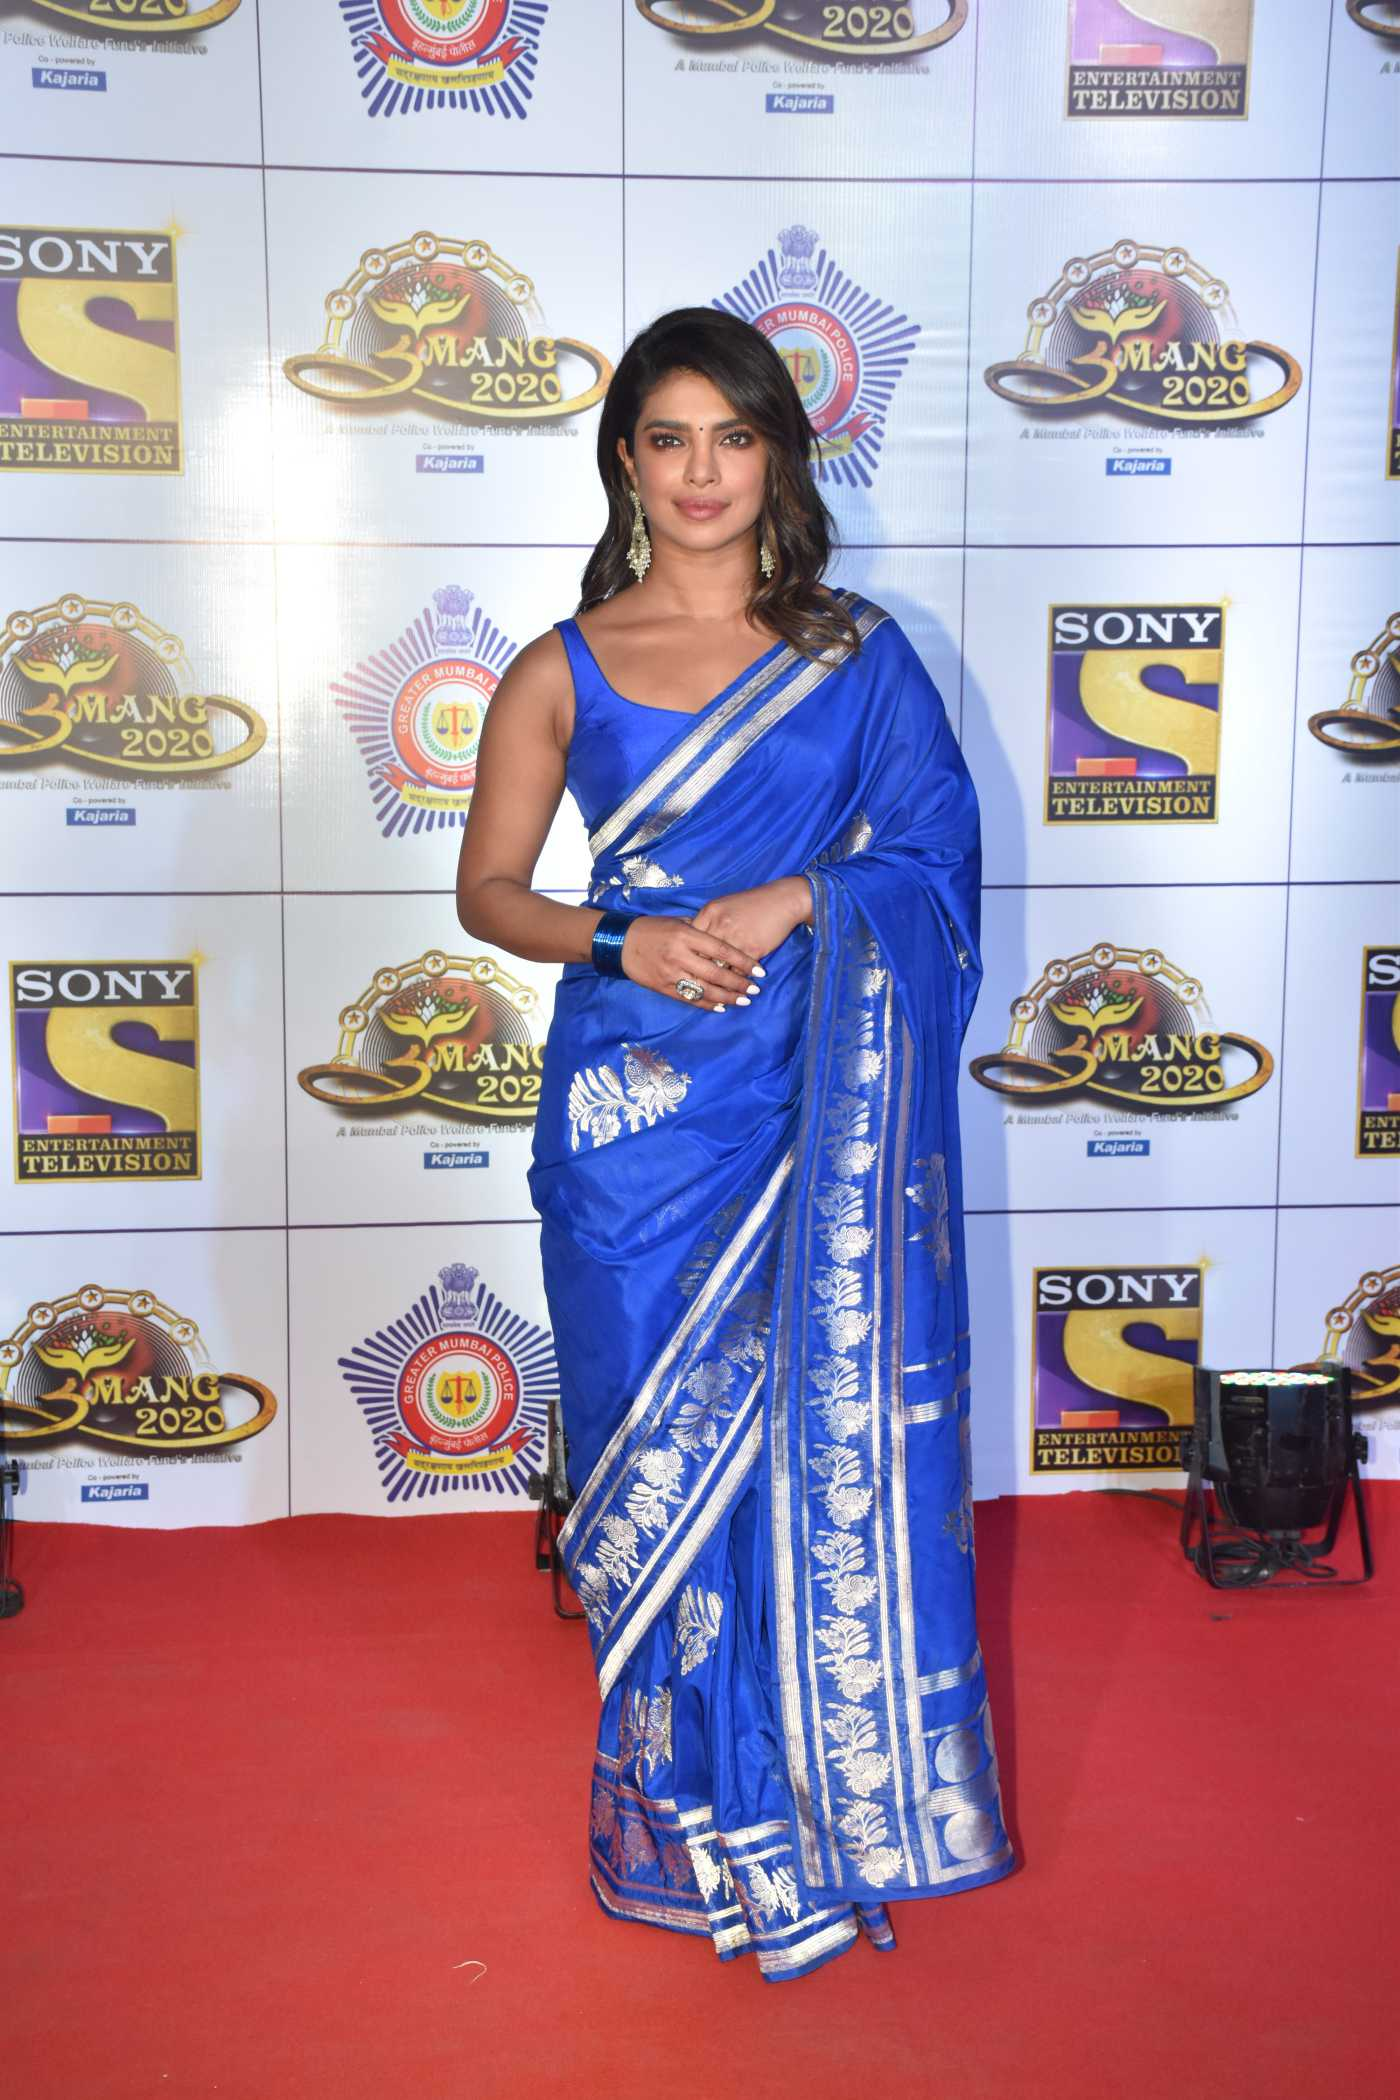 Priyanka Chopra Attends 2020  Umang Police Awards in Mumbai 01/19/2020